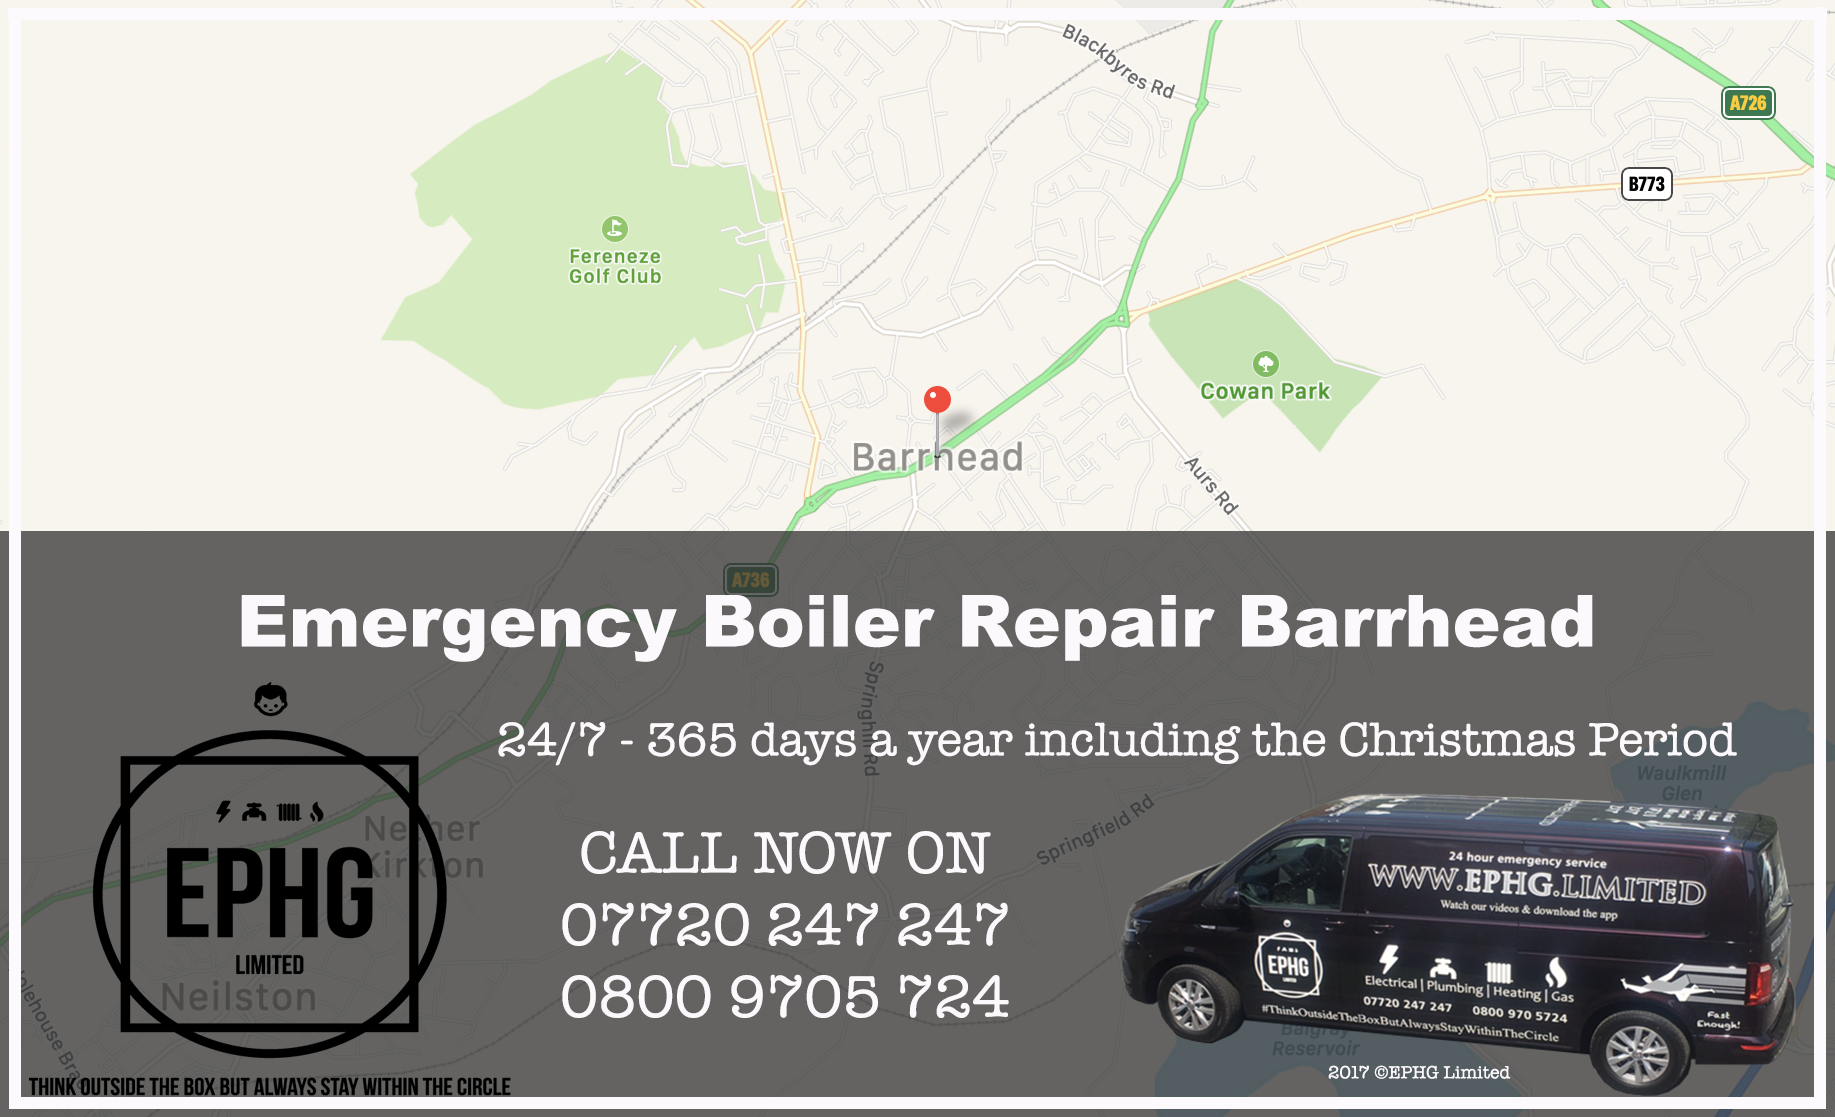 24 Hour Emergency Boiler Repair Barrhead